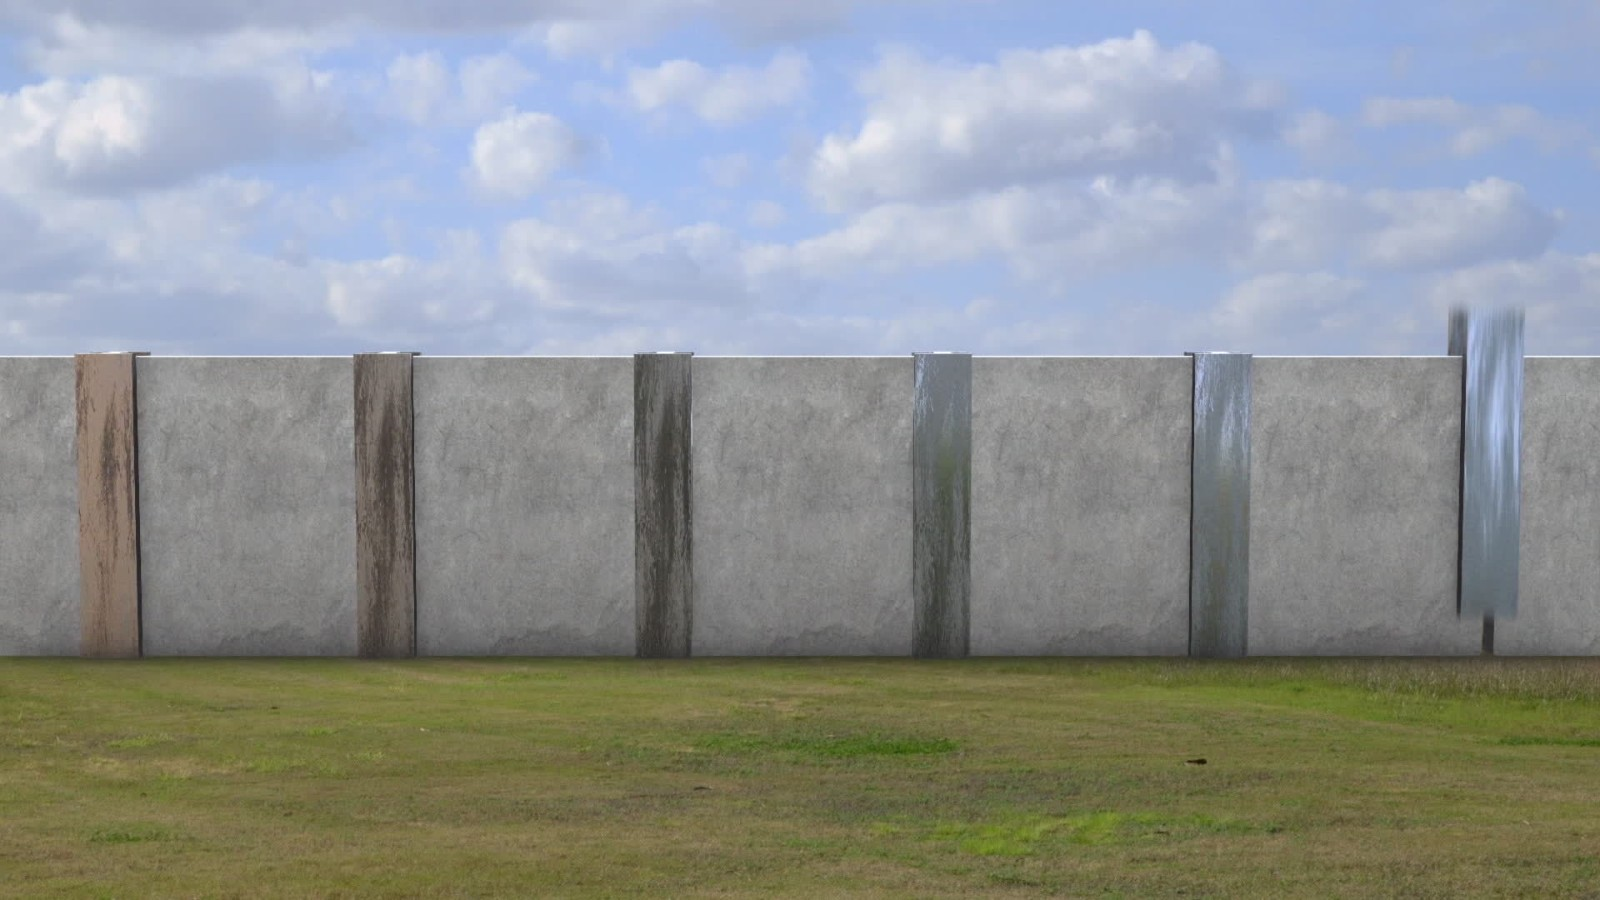 We Cannot Let Trump Build A Wall Along Our Mexican Border